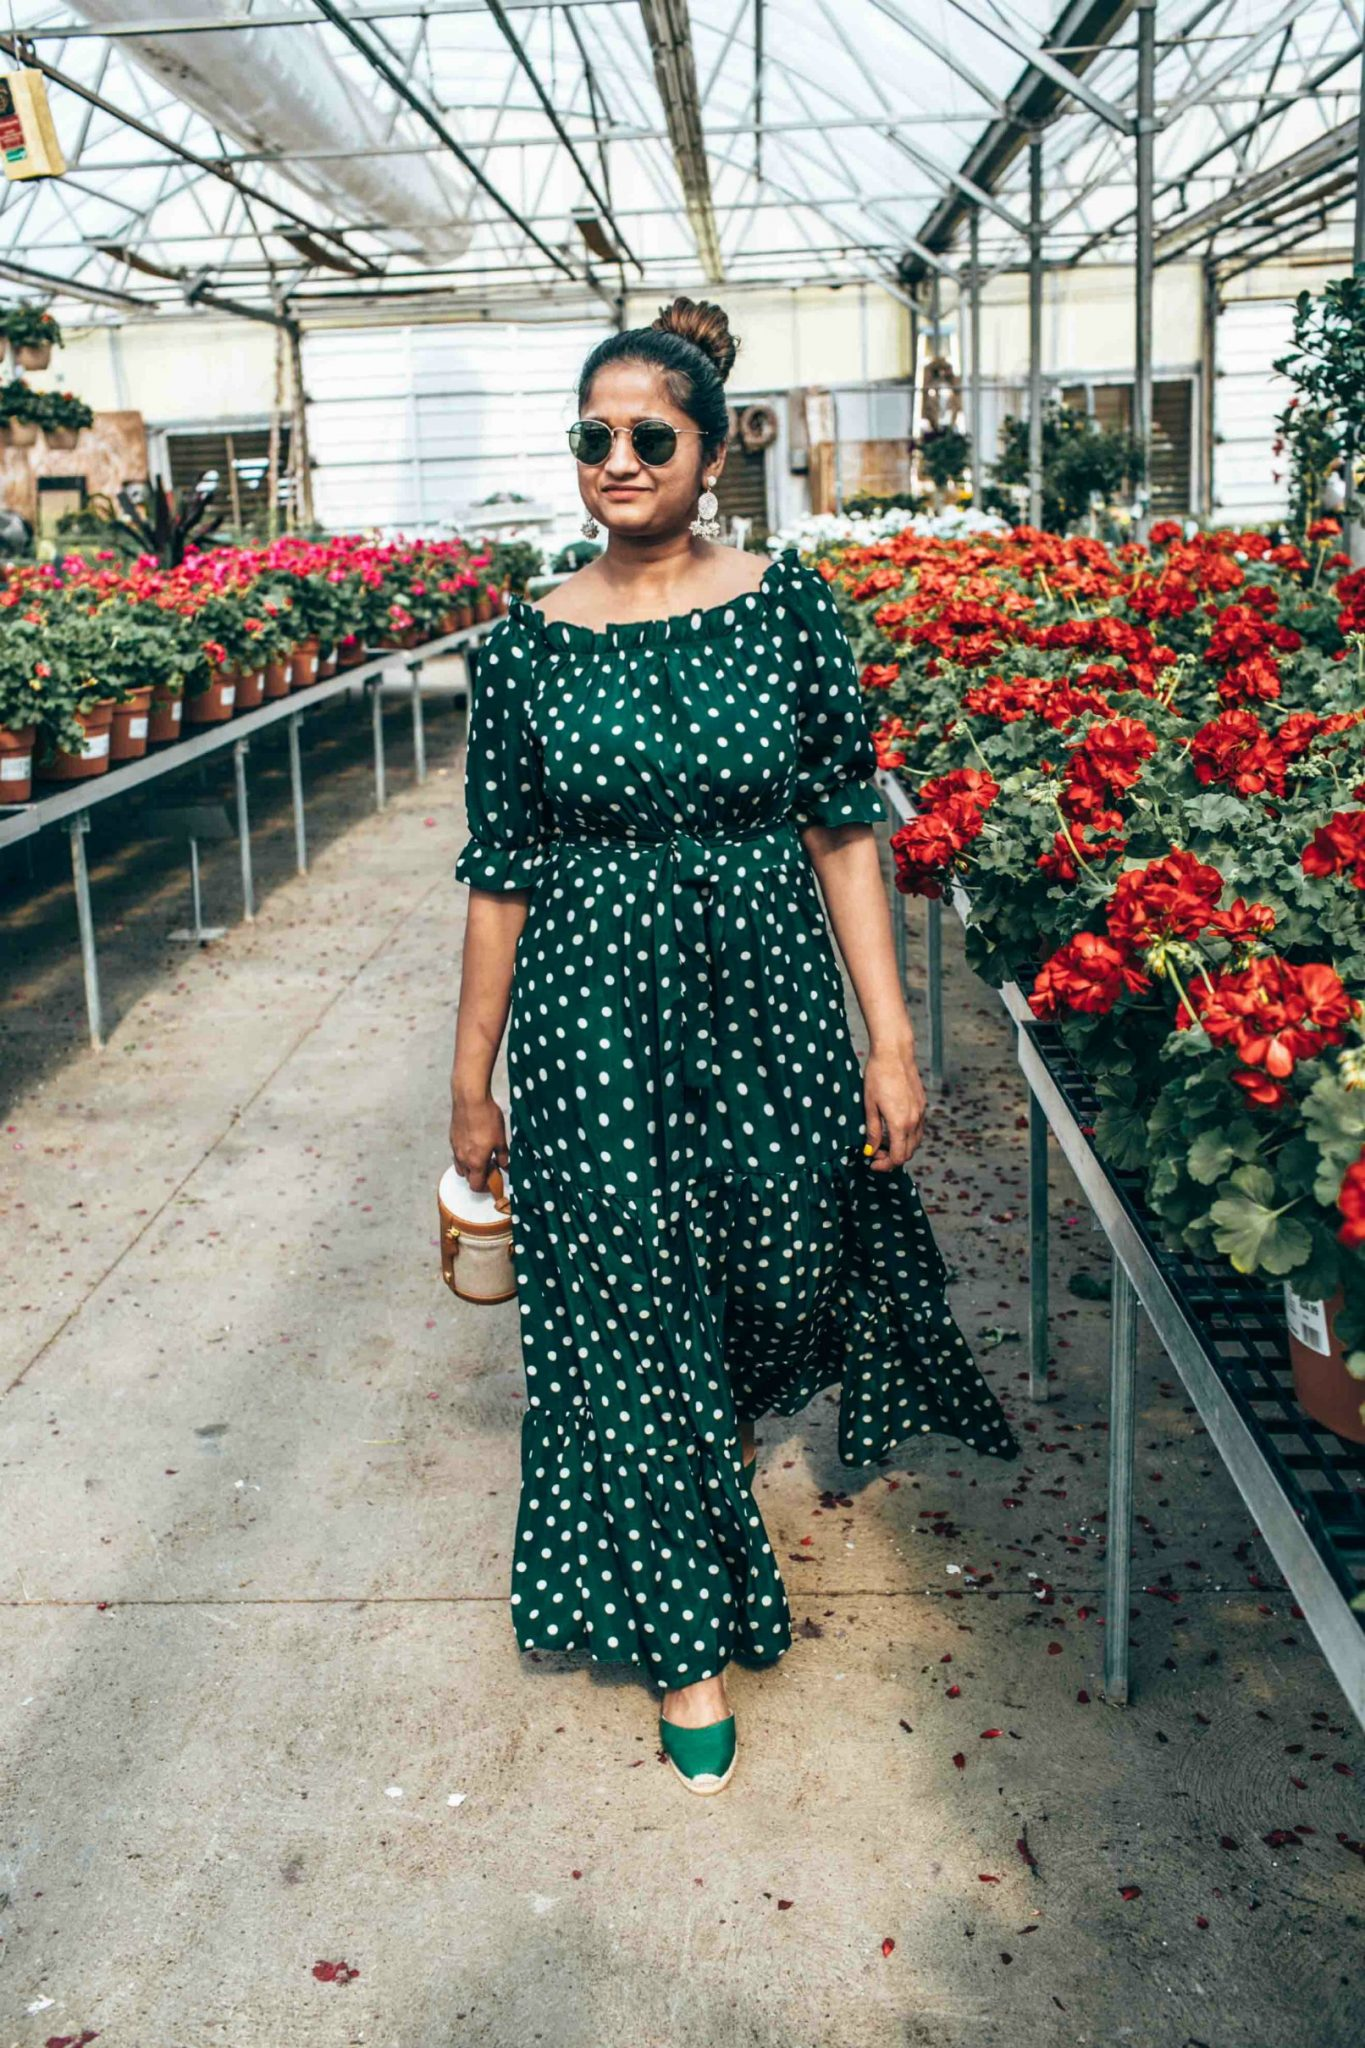 wearing Shein Polka Dot Bardot Neckline Tie Waist Dress in green